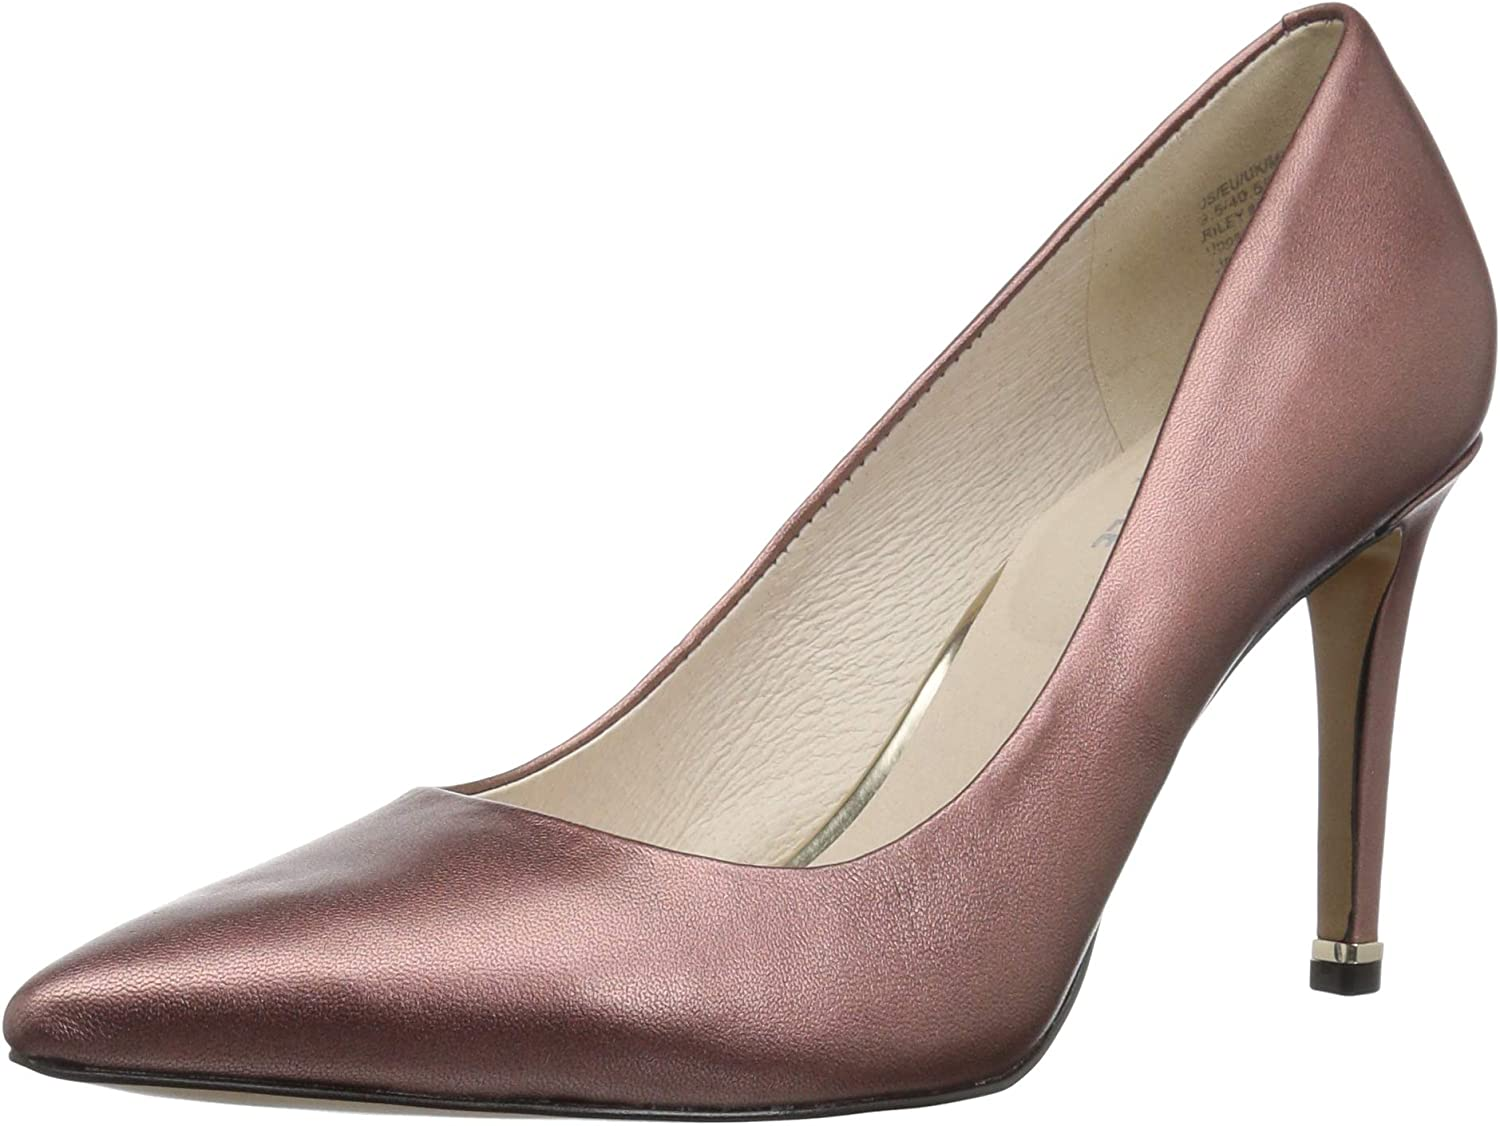 Kenneth Cole New York Womens Riley 85 Mm Pump Pump